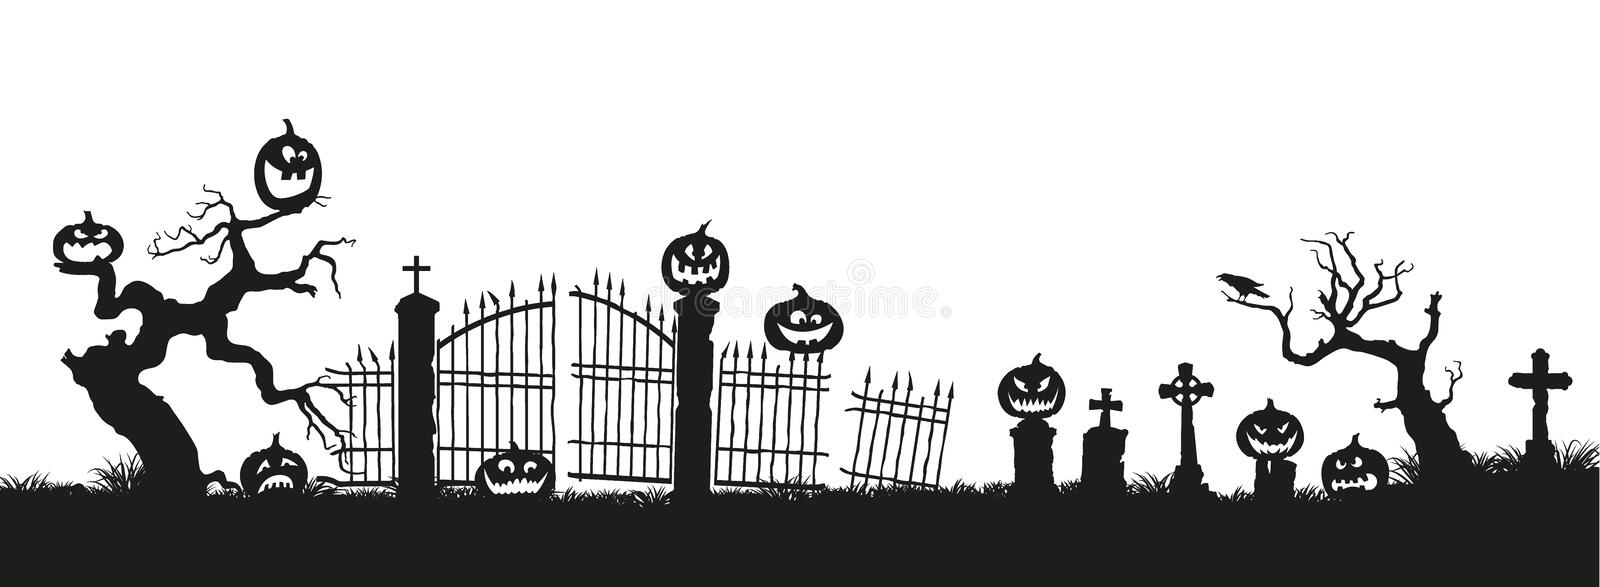 Download Holiday Halloween Black Silhouettes Of Pumpkins On The Cemetery White Background Graveyard